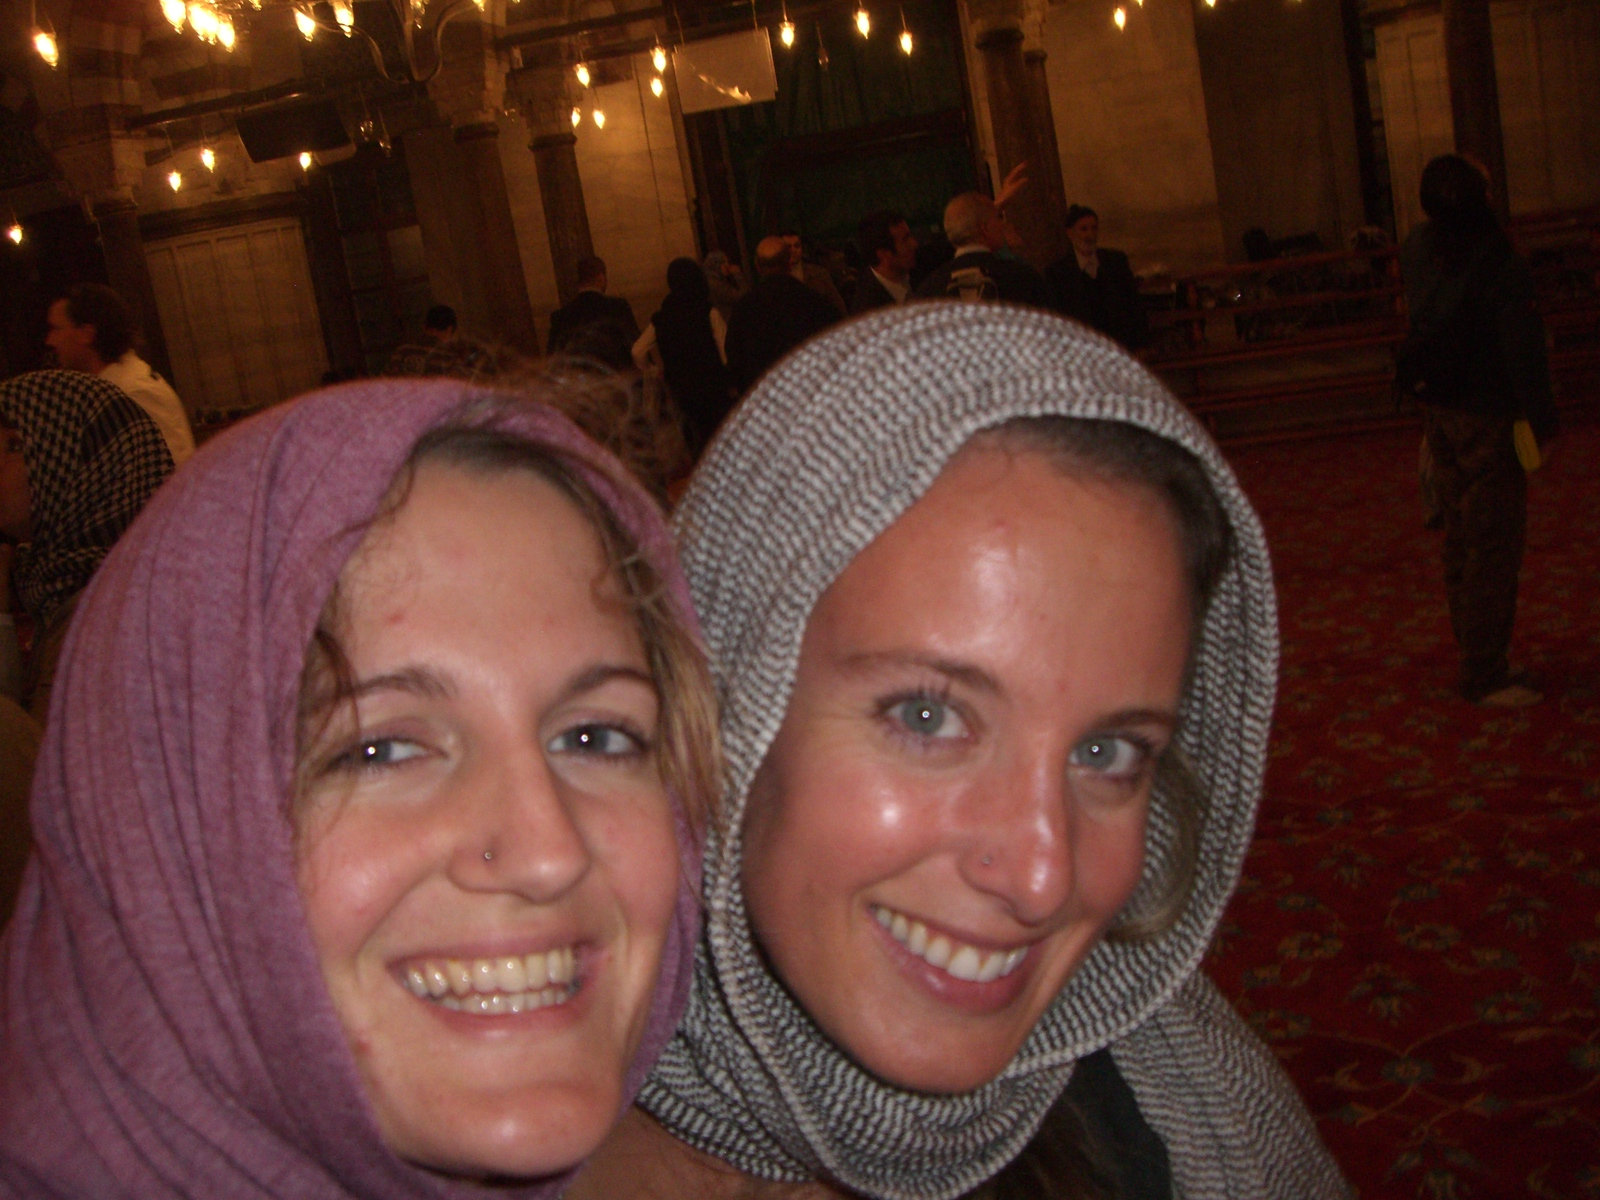 Inside a mosque, flashing the blue eyes that get us into so much trouble...